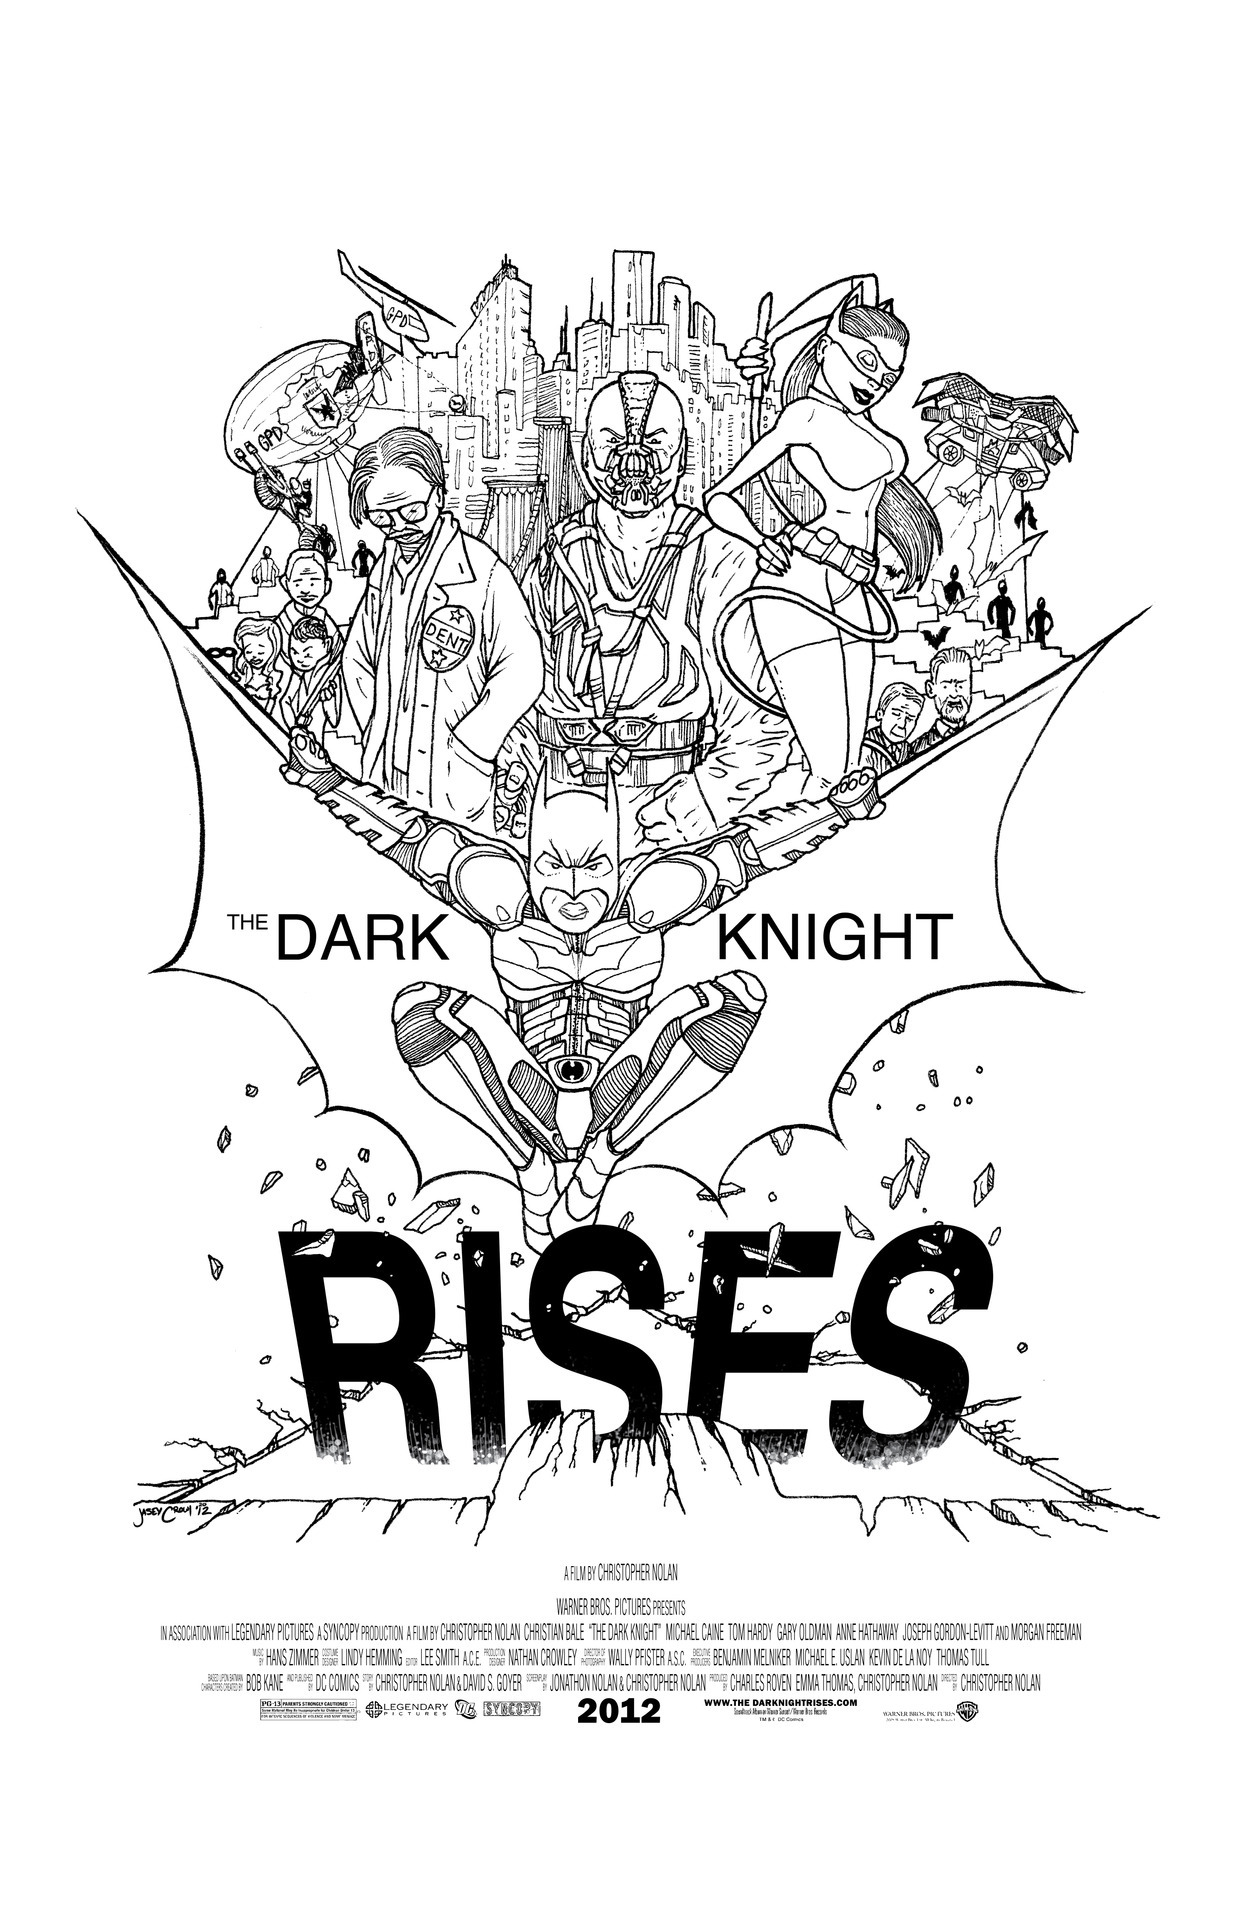 HE IS RISEN INDEED!!!  The Dark Knight Rises - http://society6.com/jaseycrowl Limited Edition B&W Poster and T @ society6  Batman recommends you read the new book you're COLOR by Jasey Crowl @ http://yourecolor.com  Original art and writing © Jasey Crowl 2012 http://jaseycrowl.com